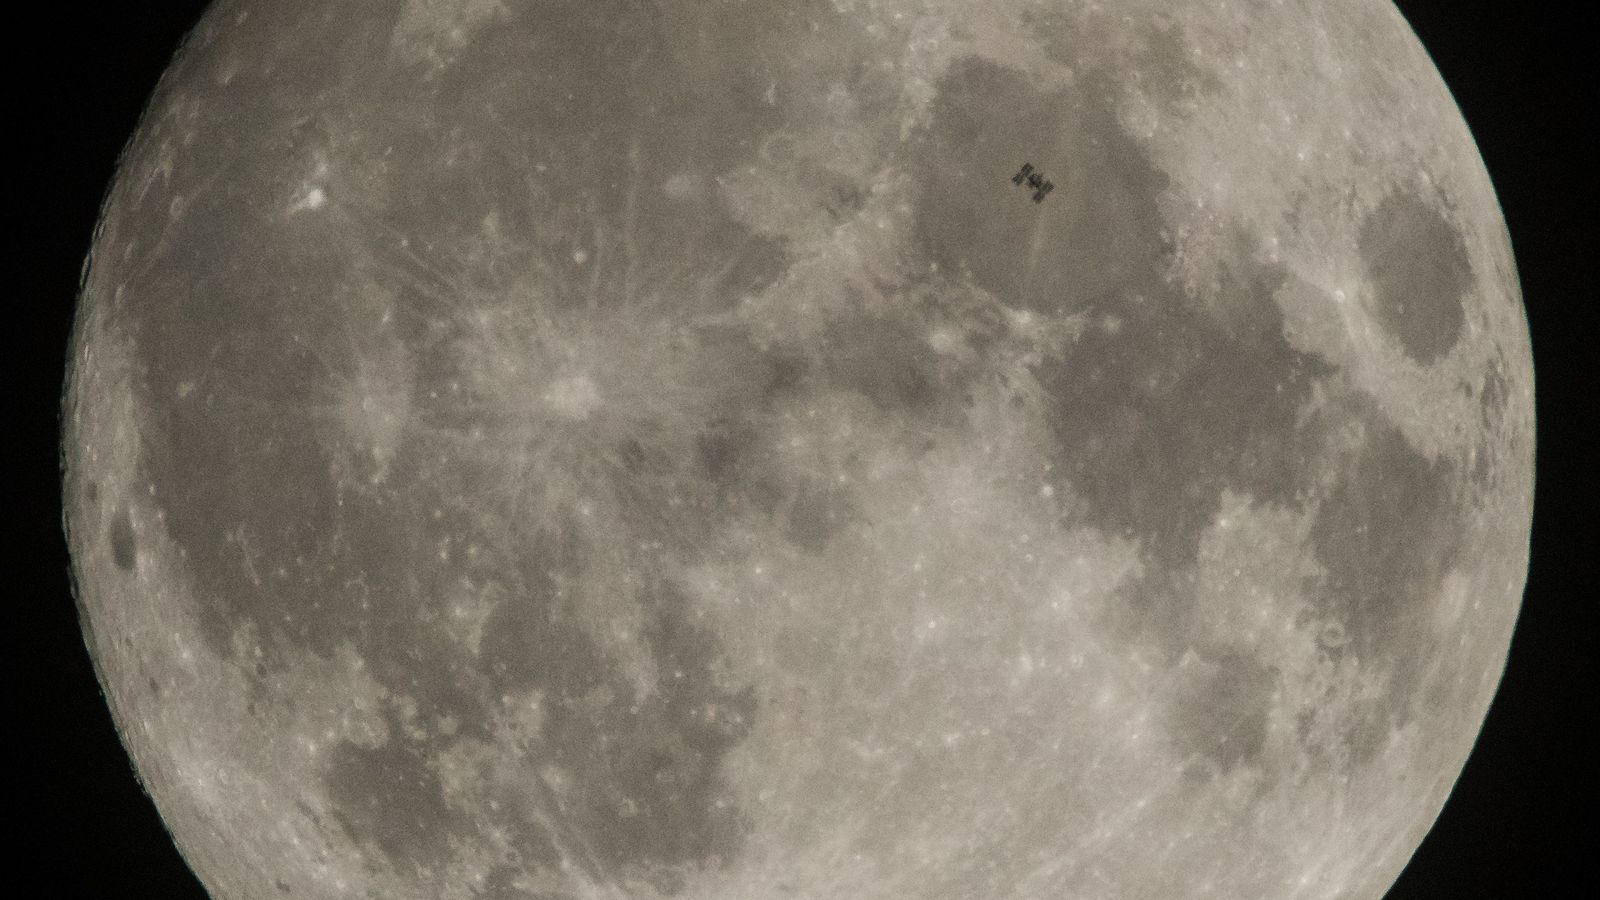 Look carefully and you can see the International Space Station in silhouette as it transits the ...